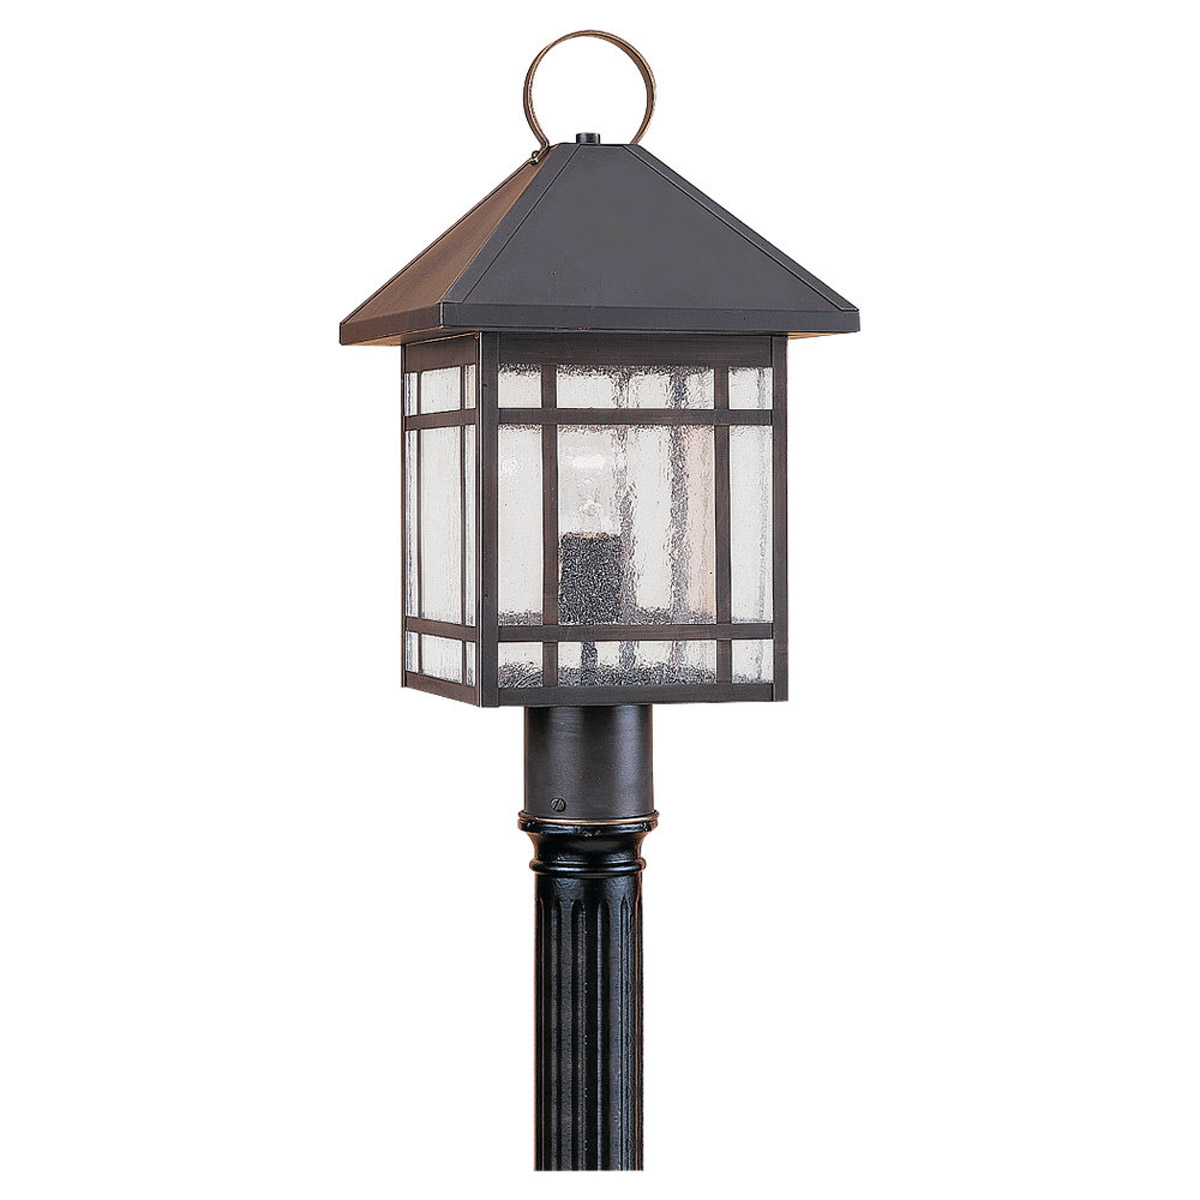 Sea Gull Lighting Largo 1 Light Outdoor Post Lantern in Antique Bronze 82007-71